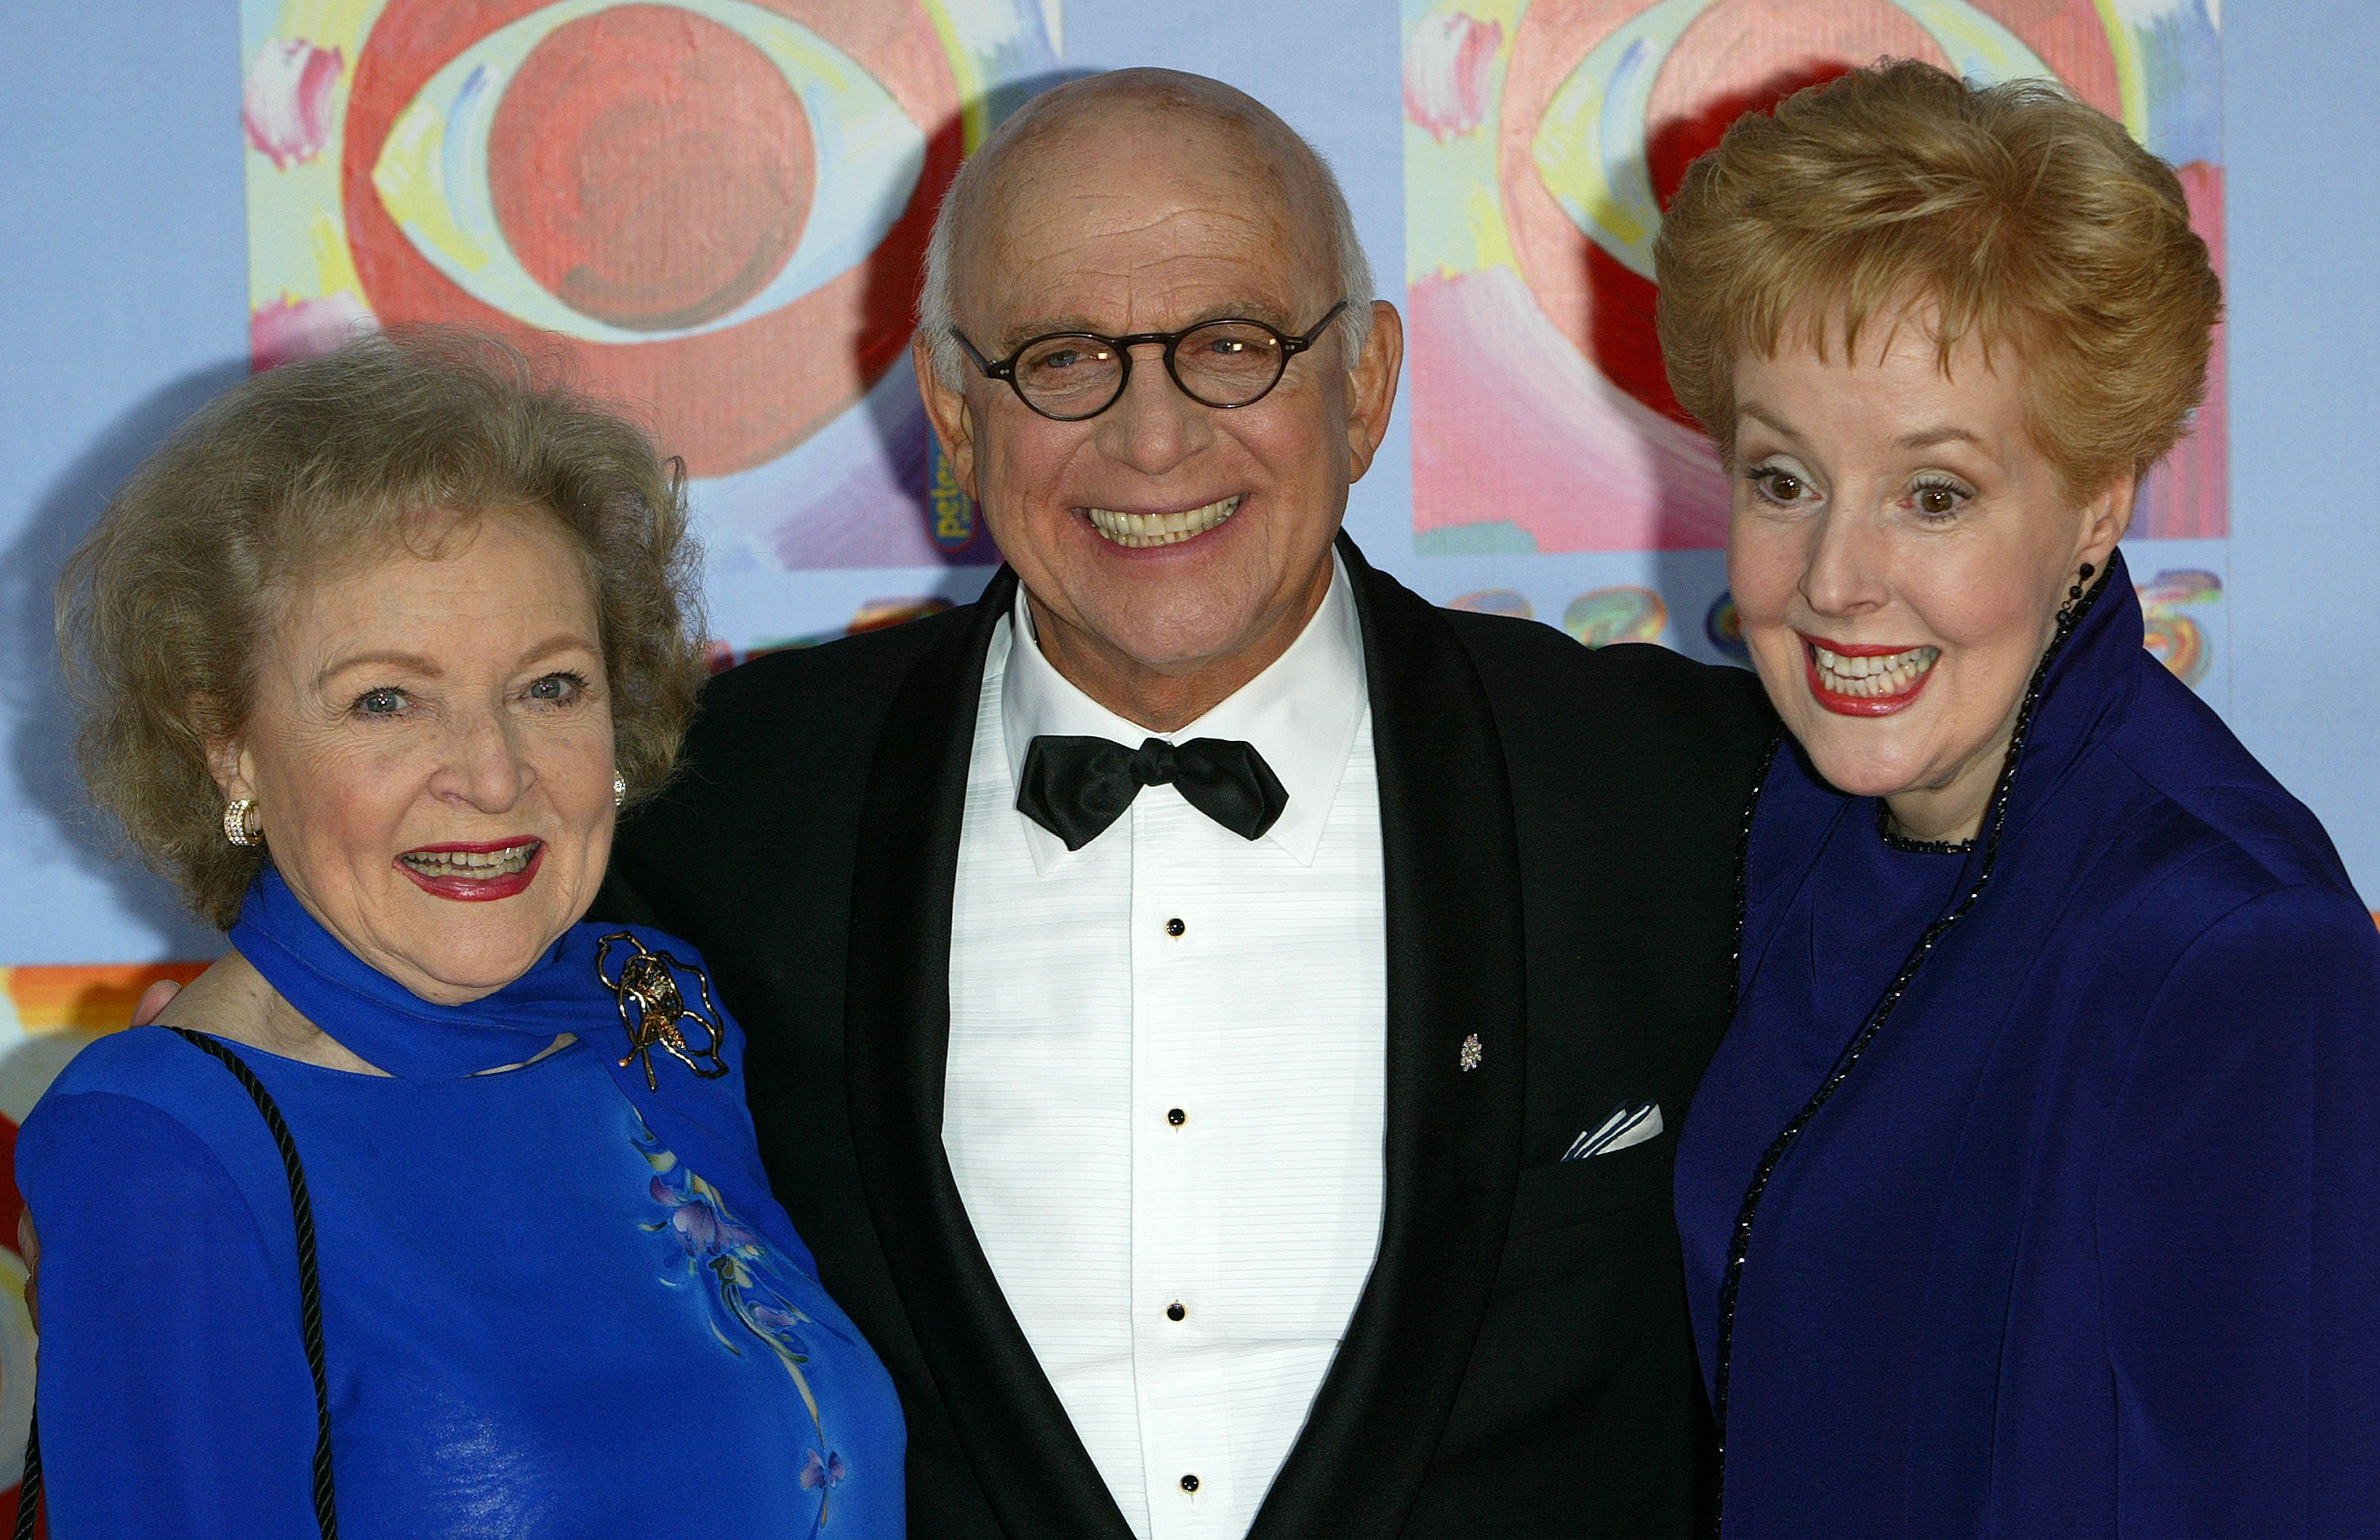 From left to right, Betty White, Gavin Macleod and actress Georgia Engel at the 'CBS At 75' celebration at the Hammerstein Ballroom in 2003. Photo: Getty Images